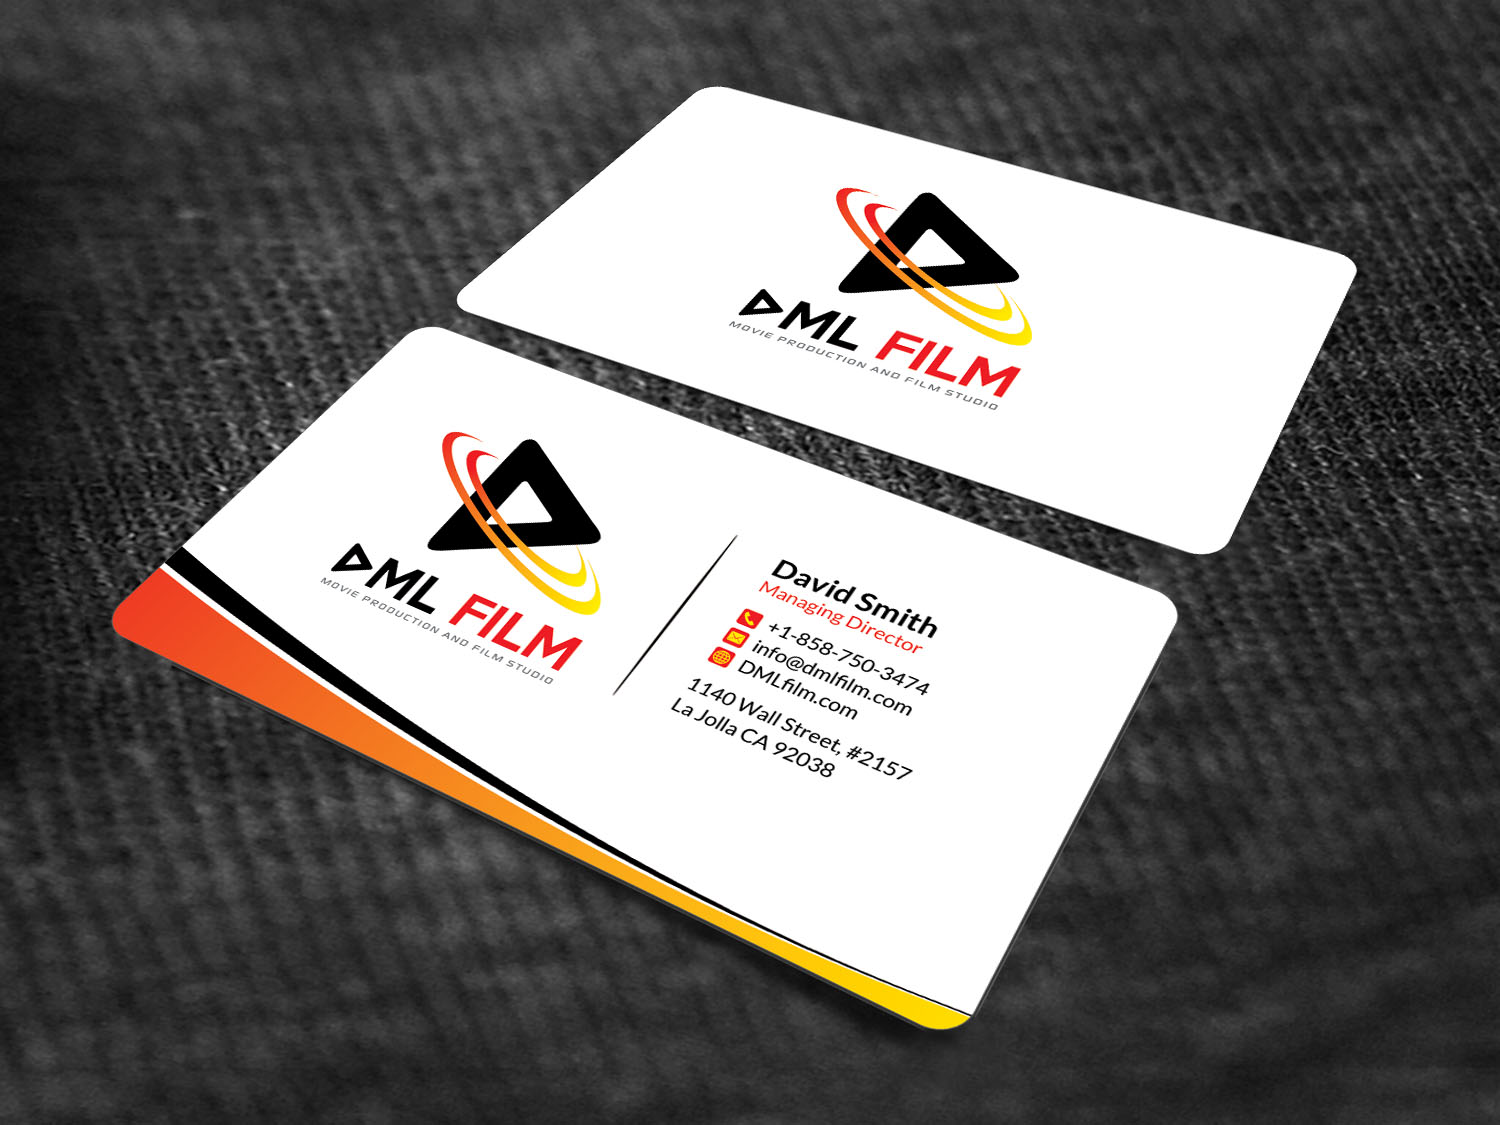 Elegant playful entertainment industry business card design for d business card design by sandaruwan for dsouza entertainment design 13486514 reheart Images